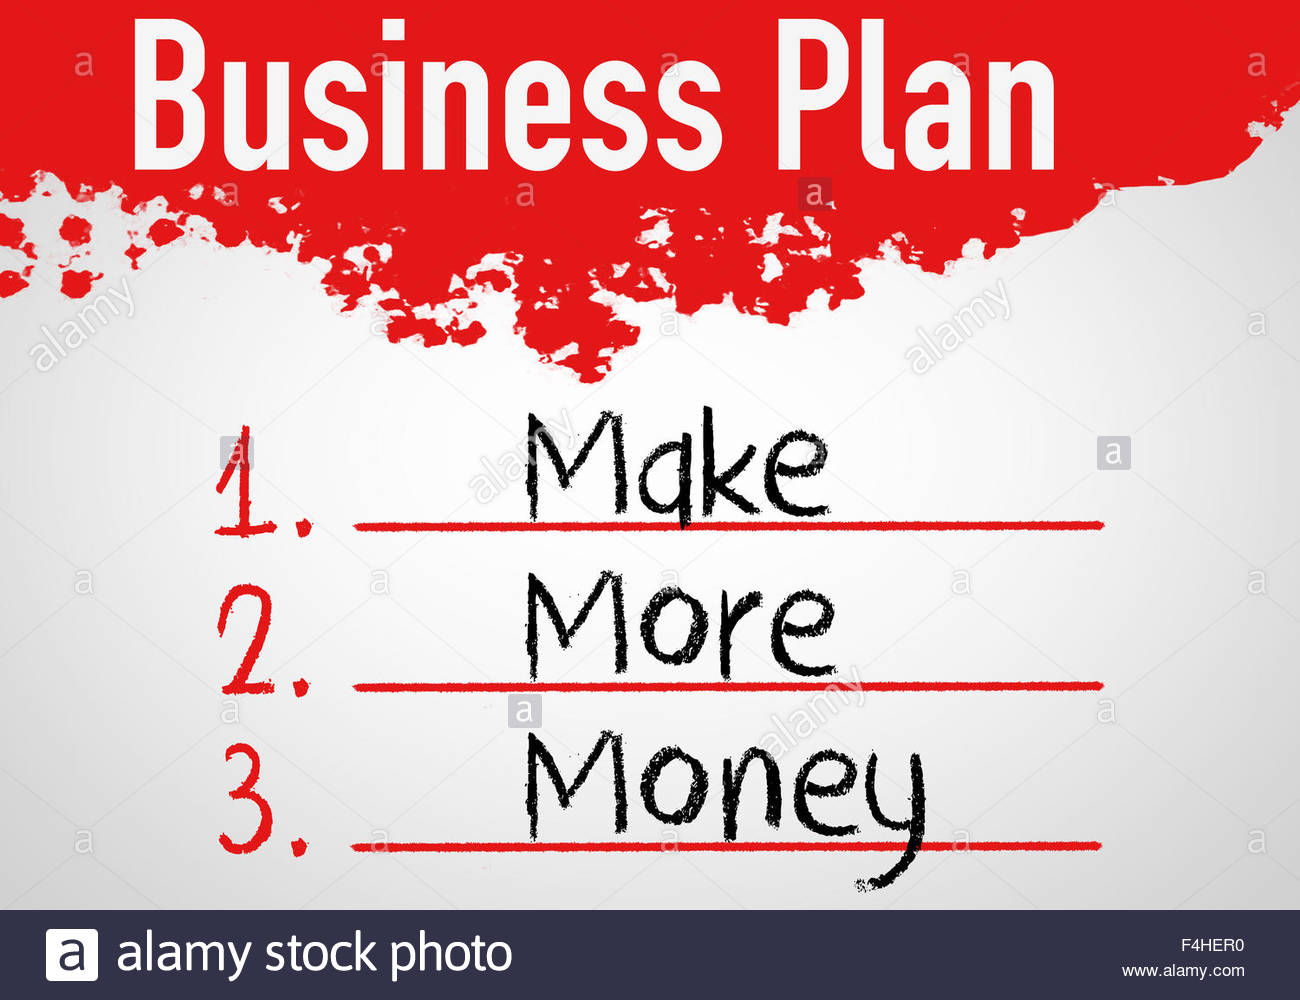 Business-Plan-Konzept Stockbild